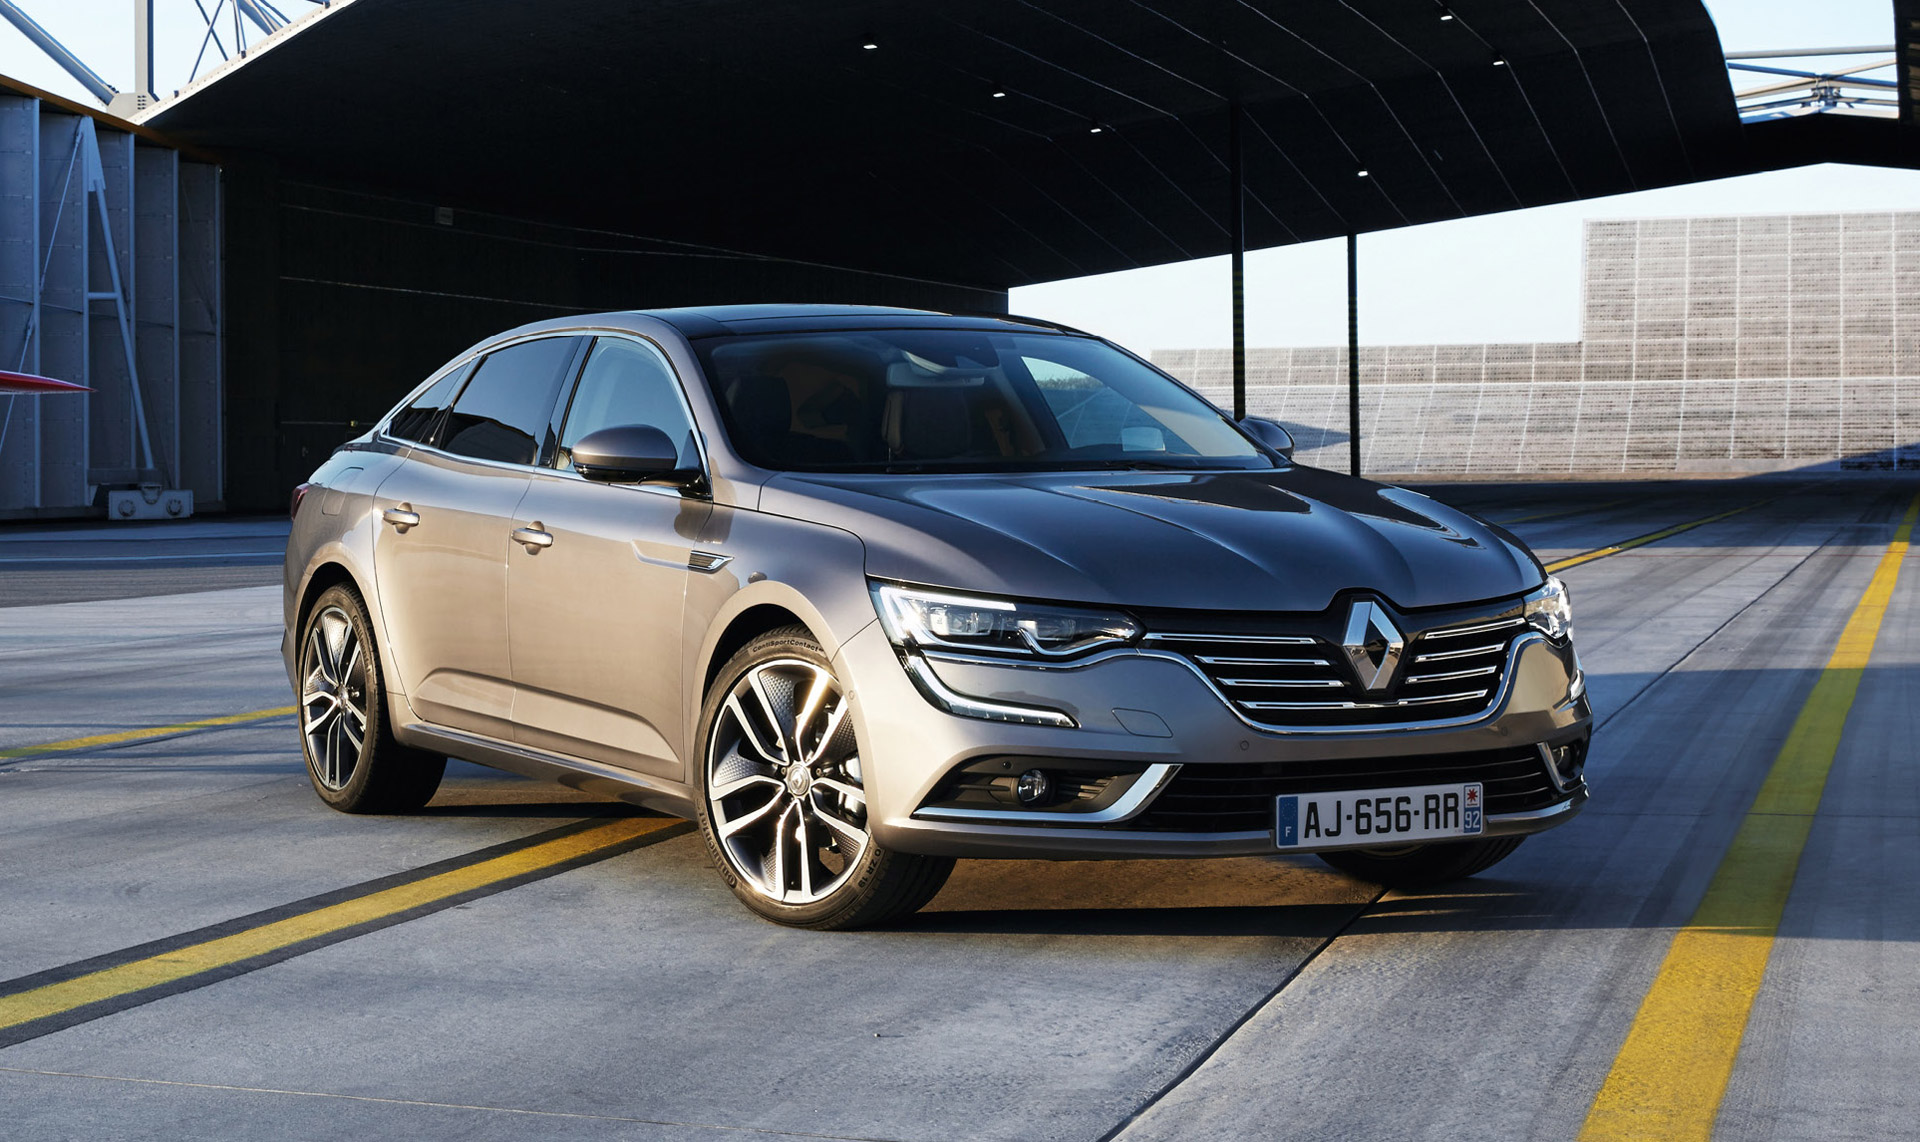 renault replaces laguna with new talisman sedan video. Black Bedroom Furniture Sets. Home Design Ideas